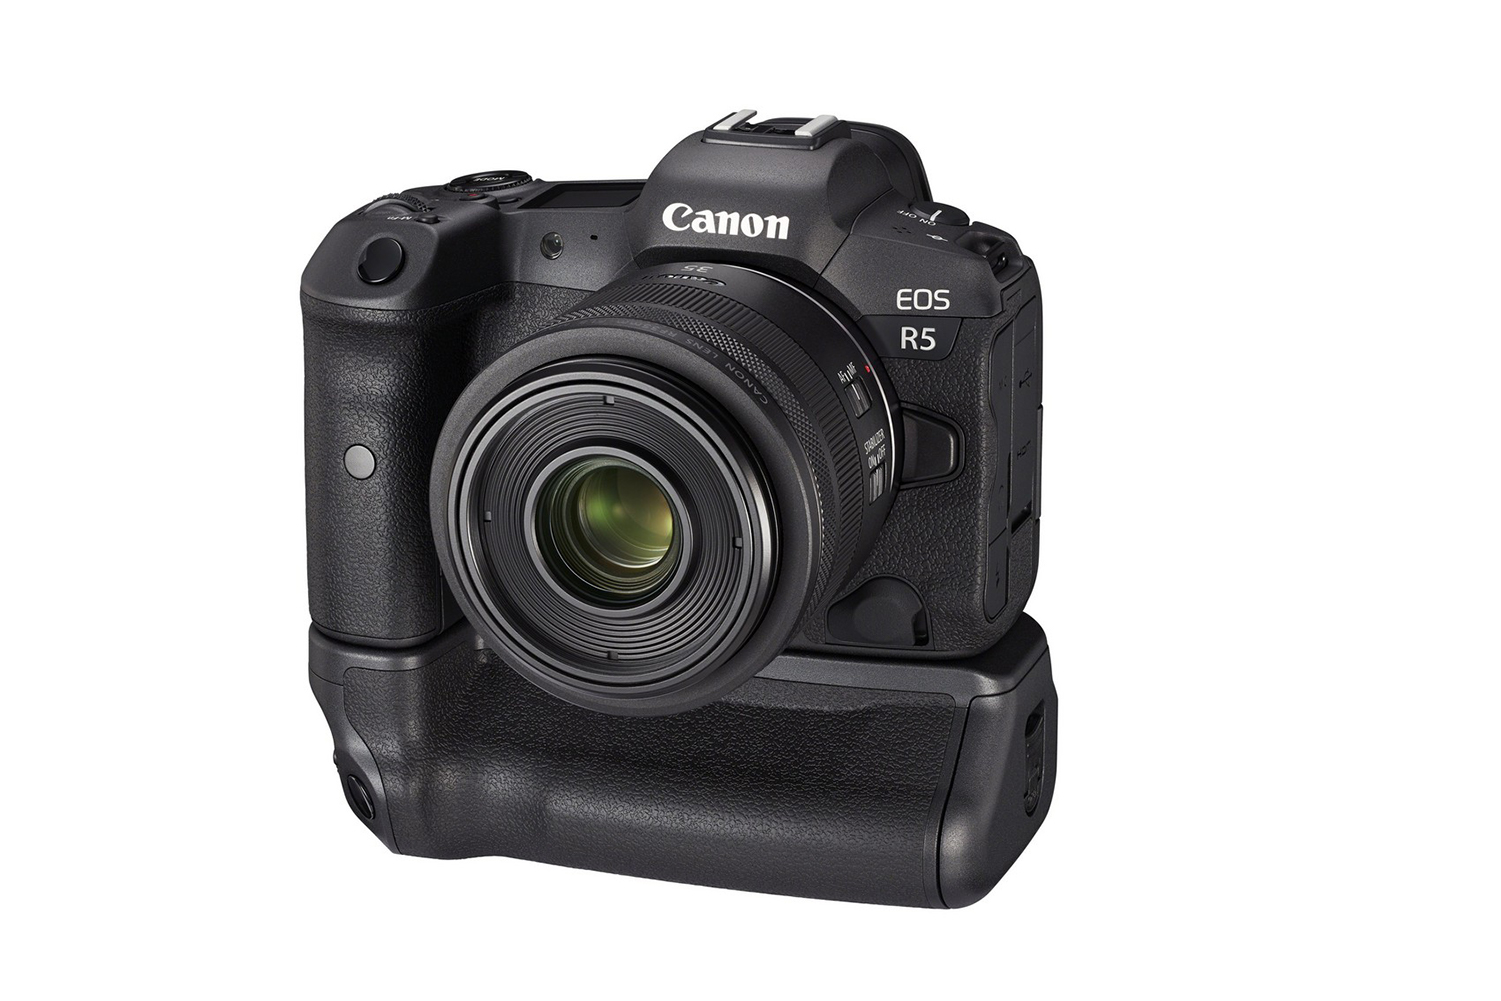 The EOS R5 with its optional grip, part of the Canon launch